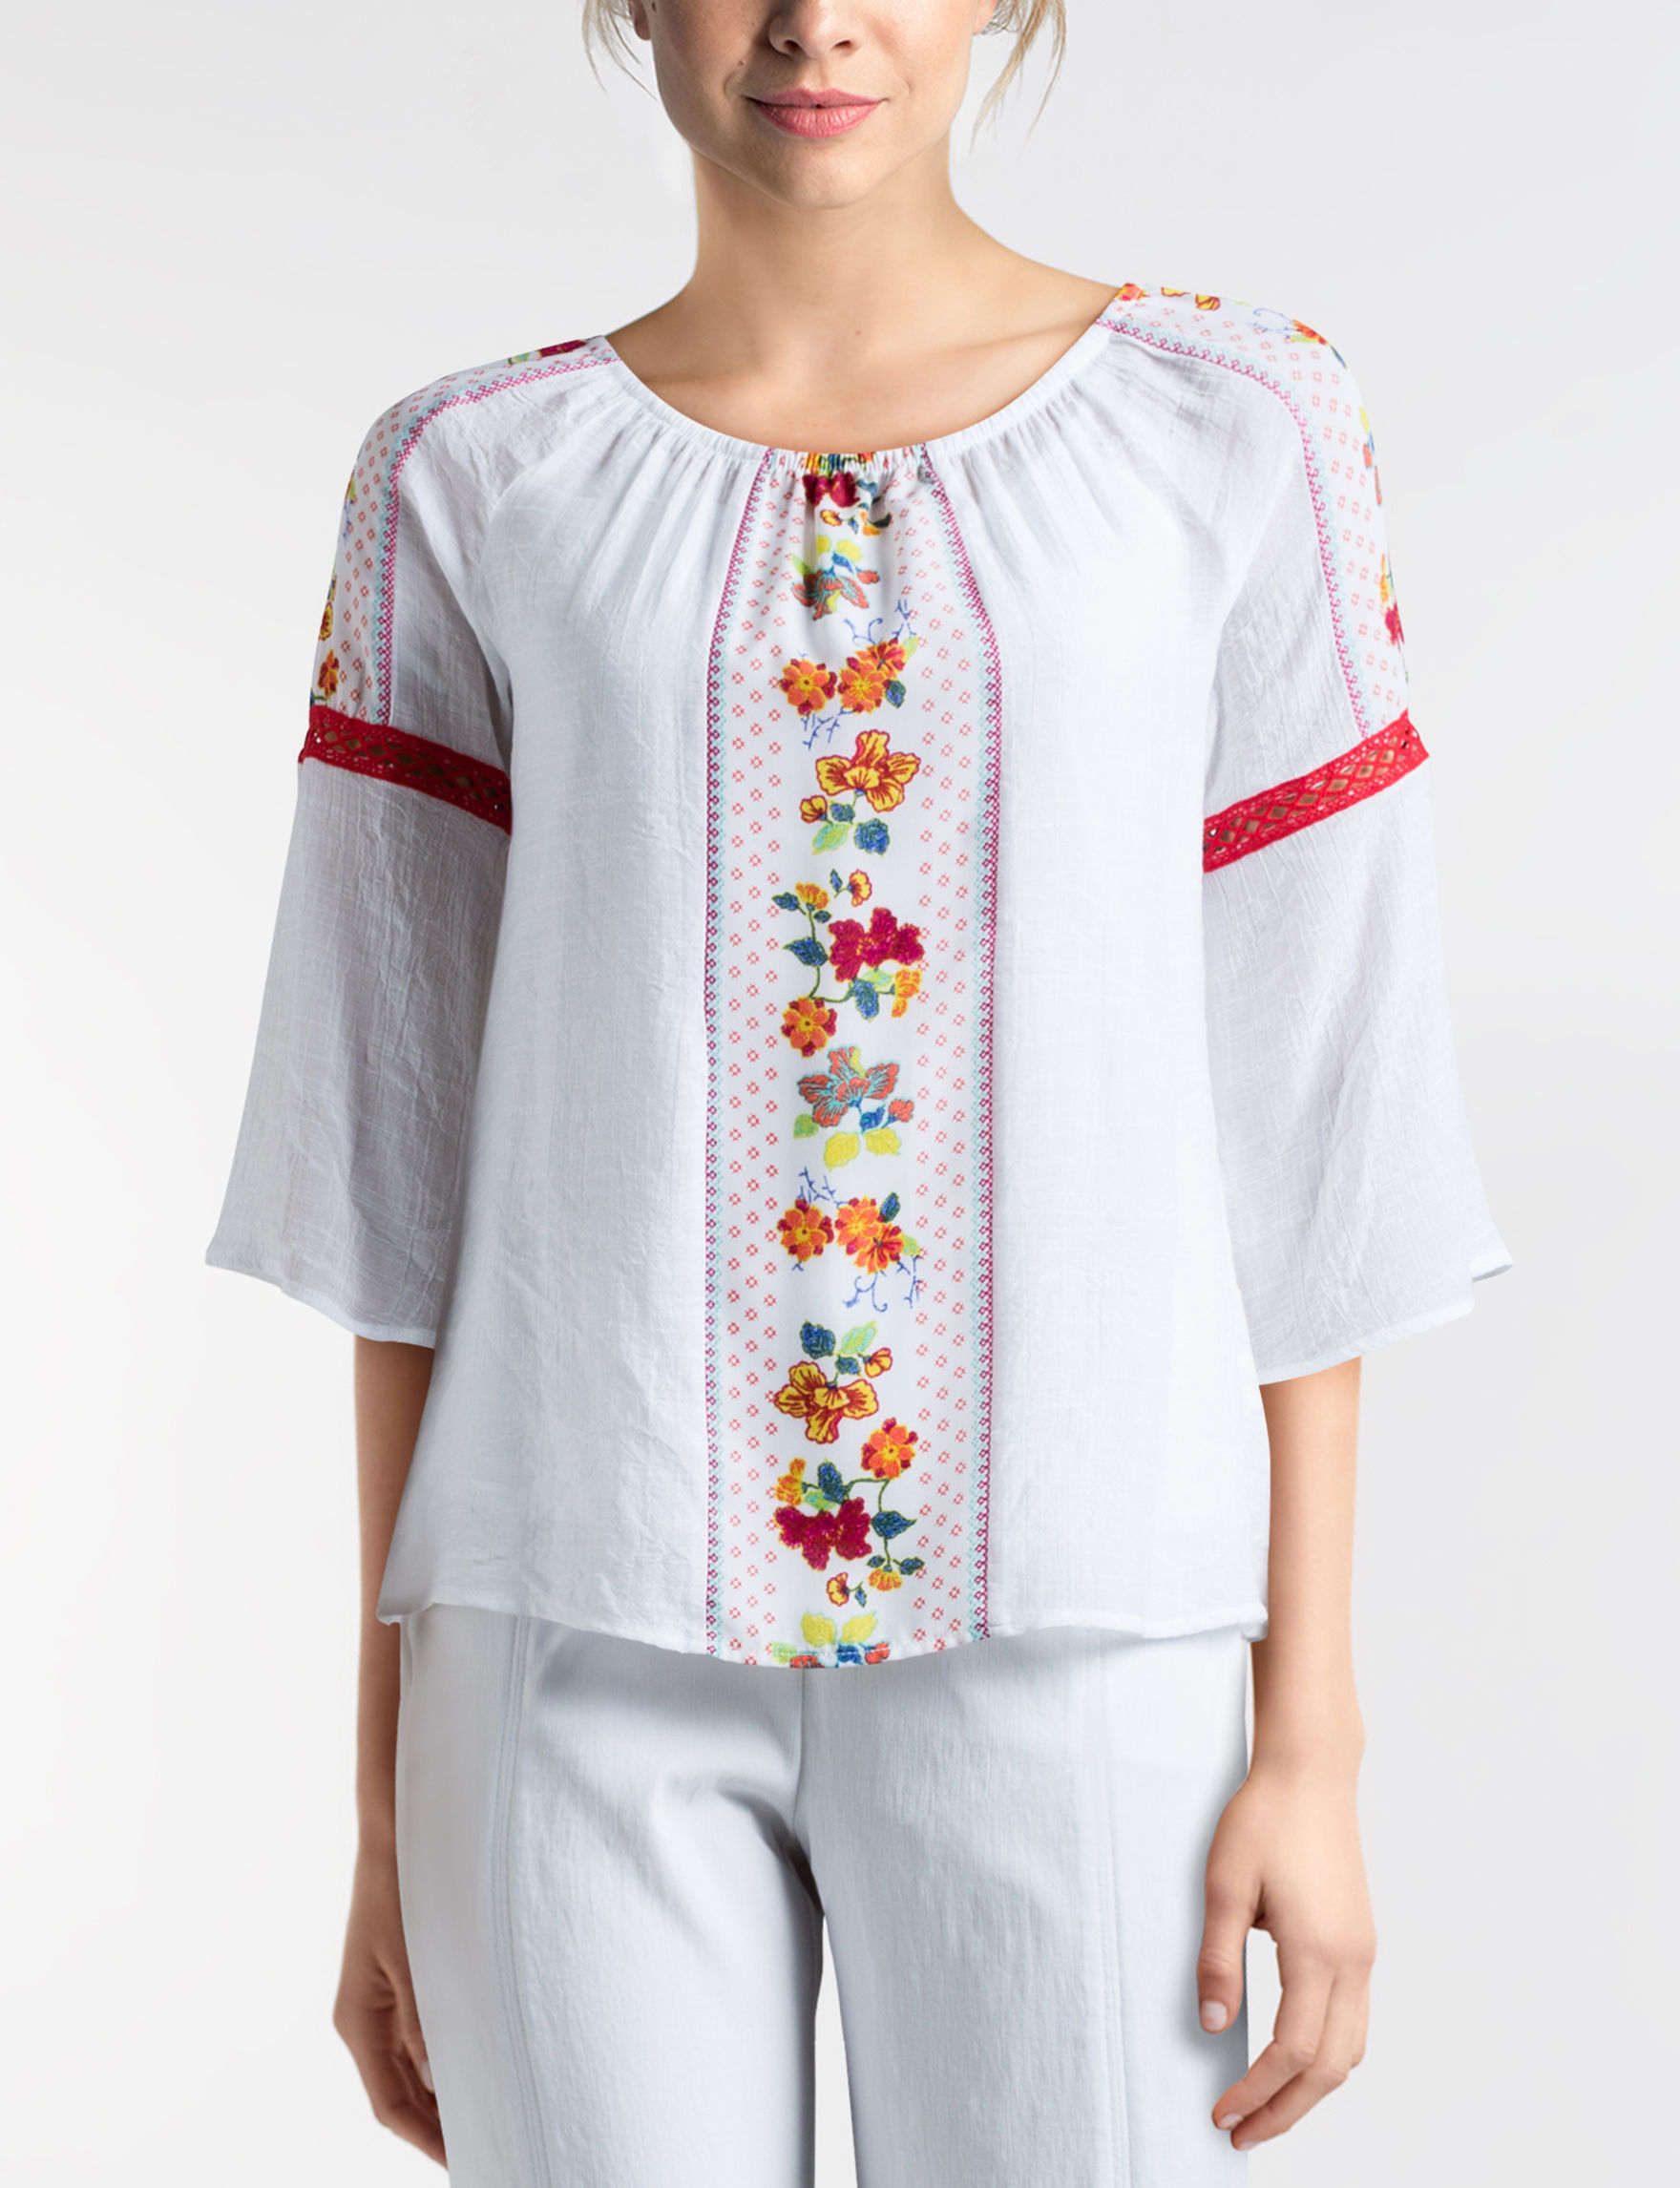 Figuero & Flower White / Red Shirts & Blouses